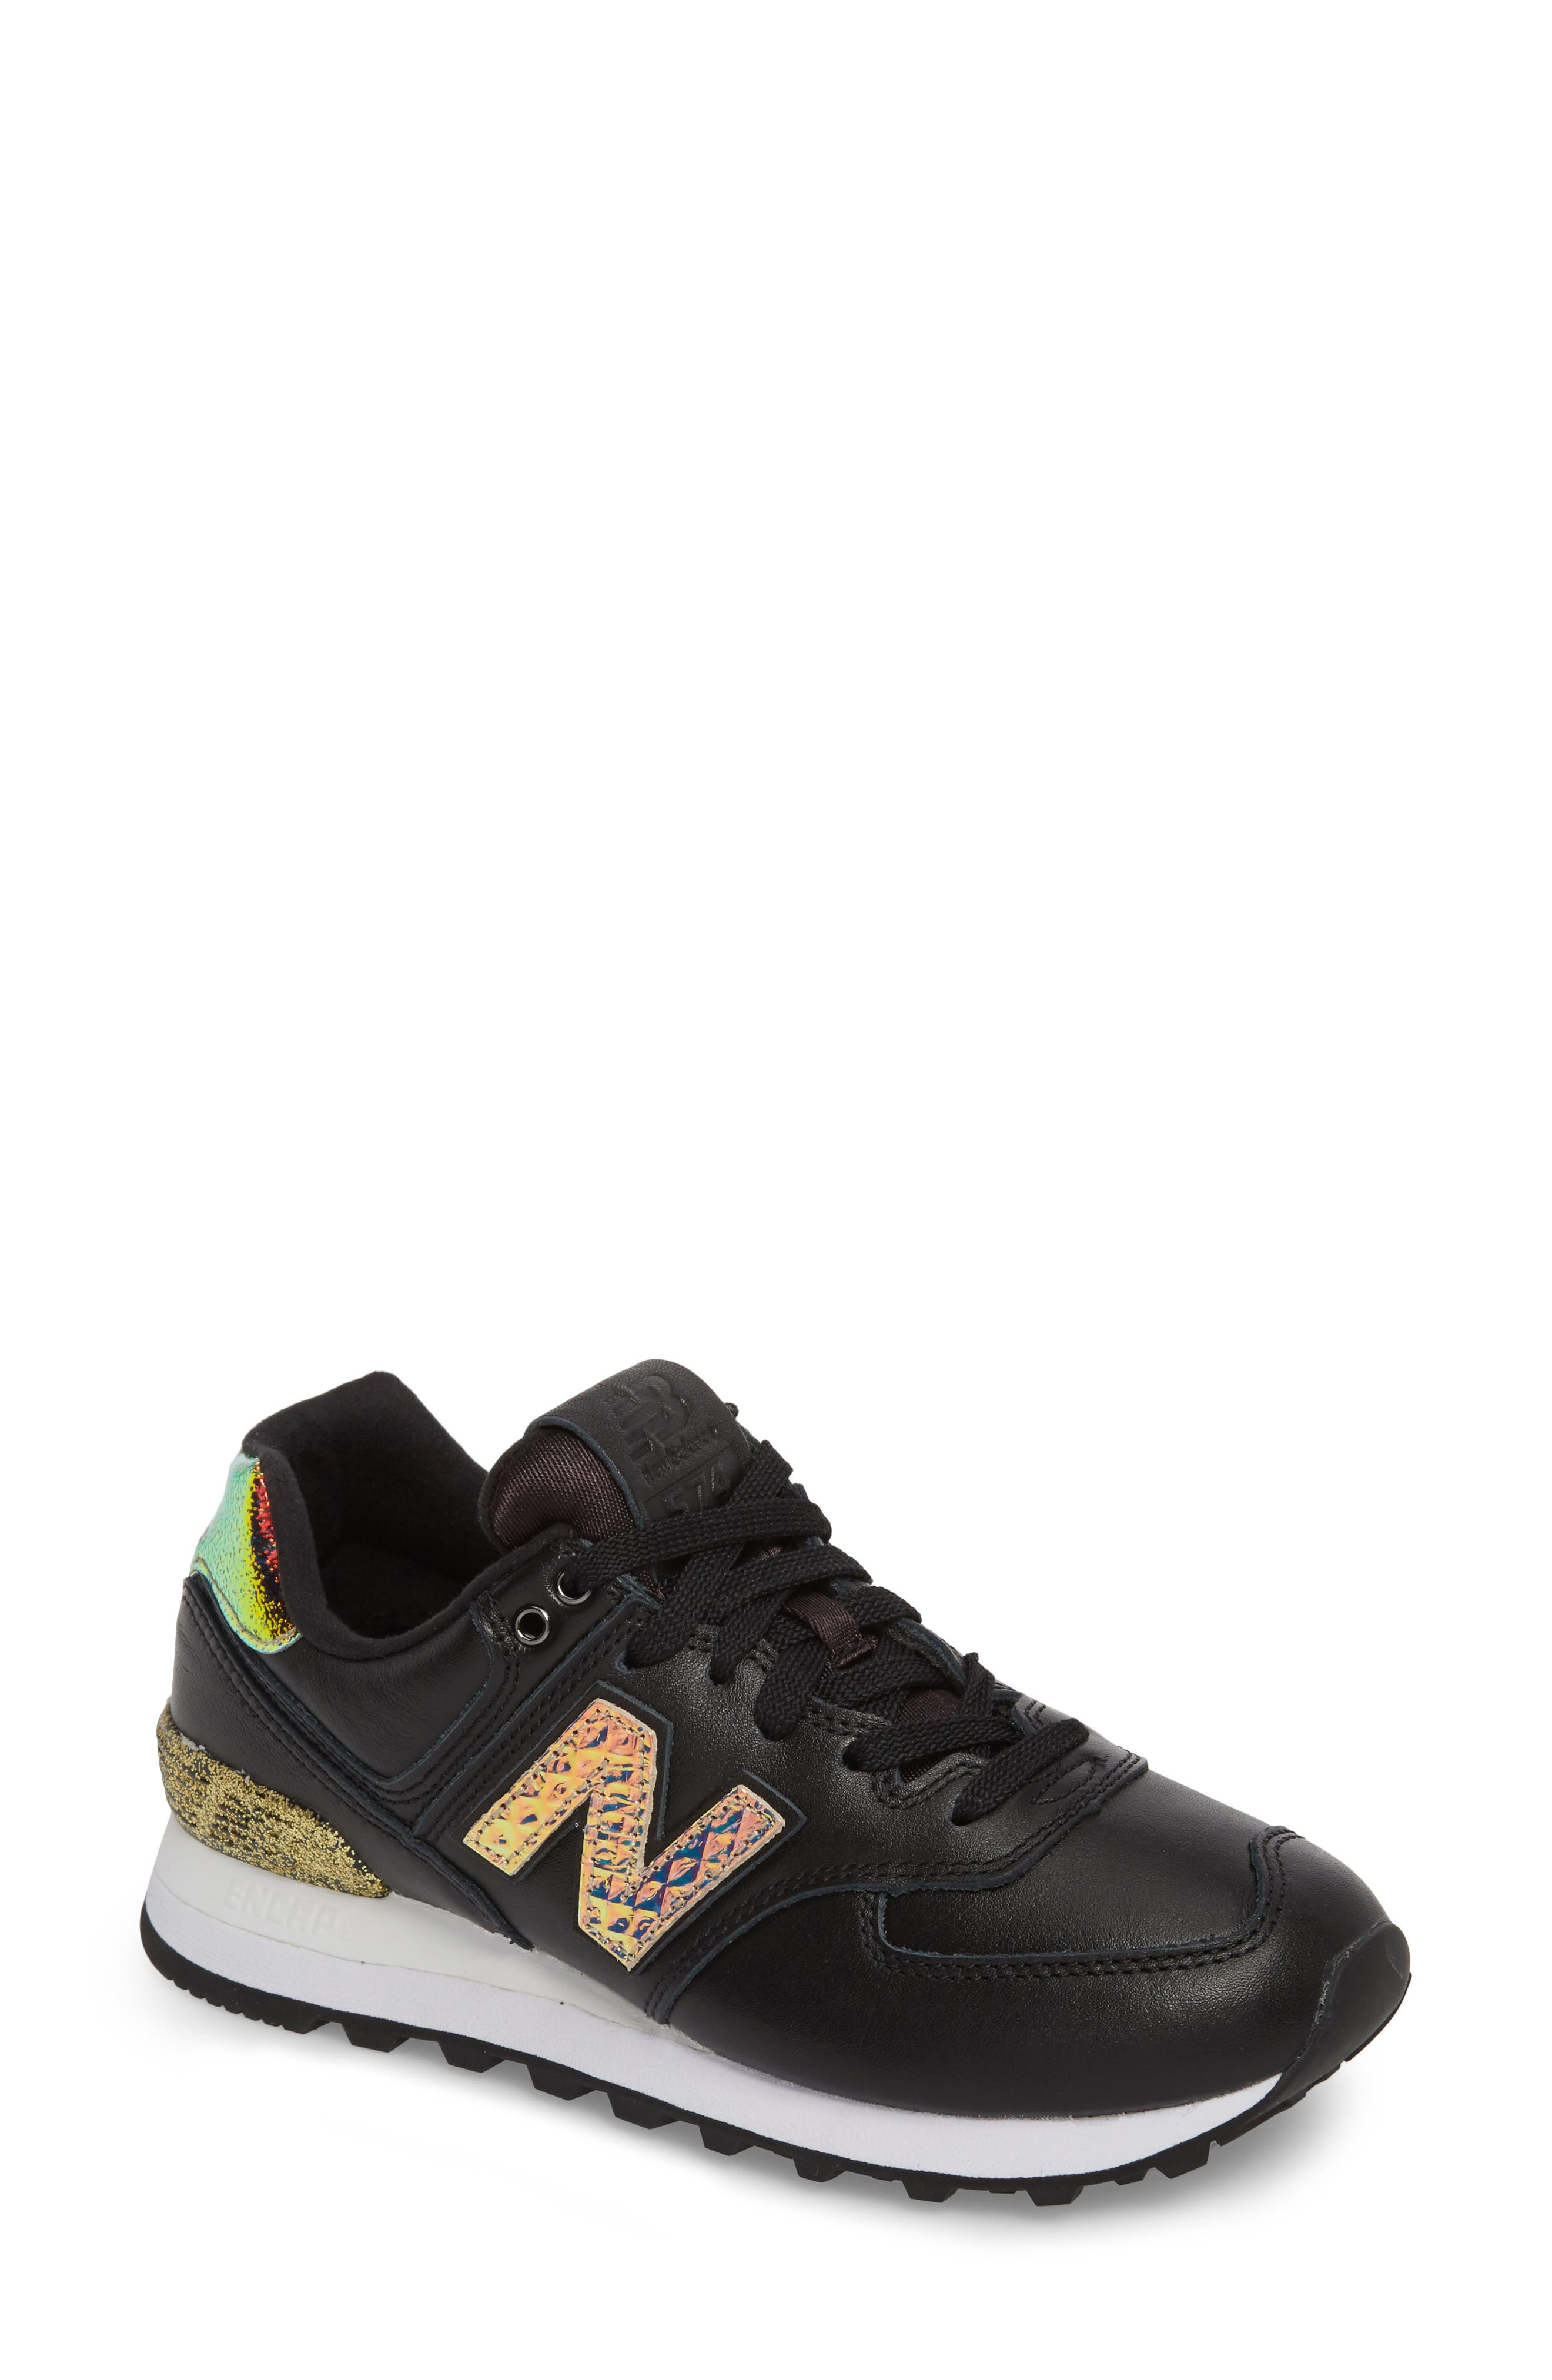 New Balance 574 Glitter Punk Sneaker (Women)